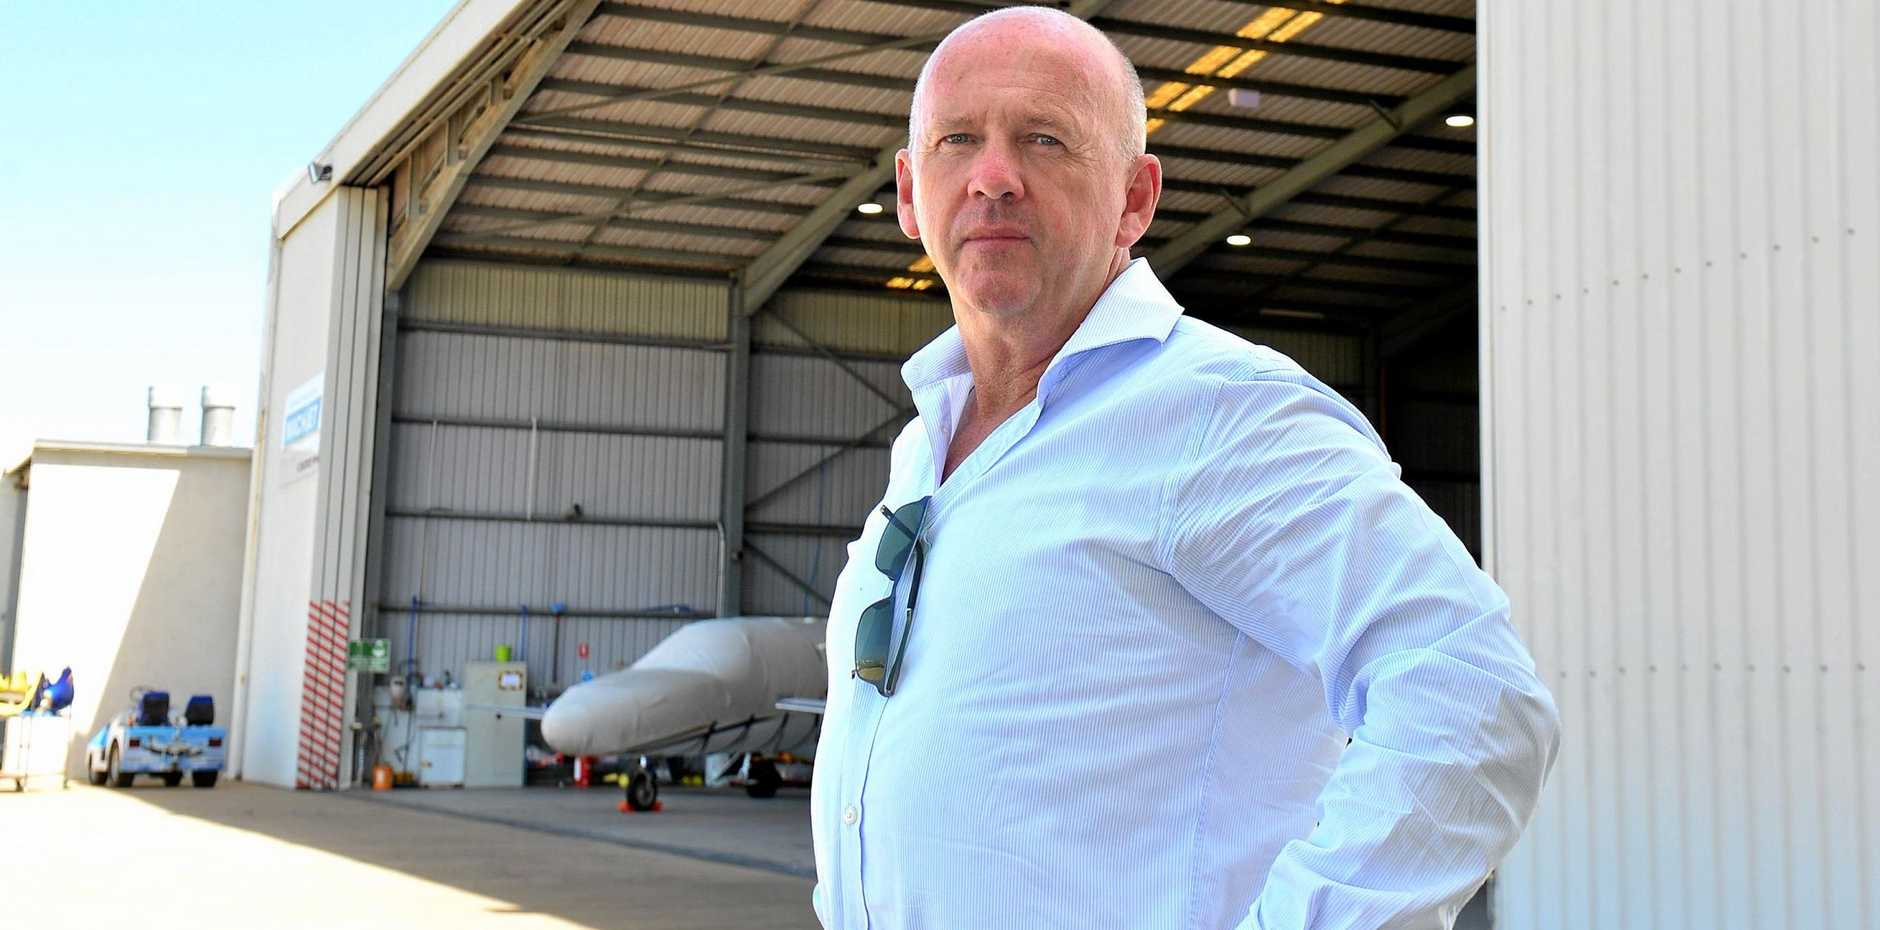 SHUT OUT: Freight Centre managing director Joe McAlinden has been denied a place on the Sunshine Coast Airport Community and Aviation Forum.